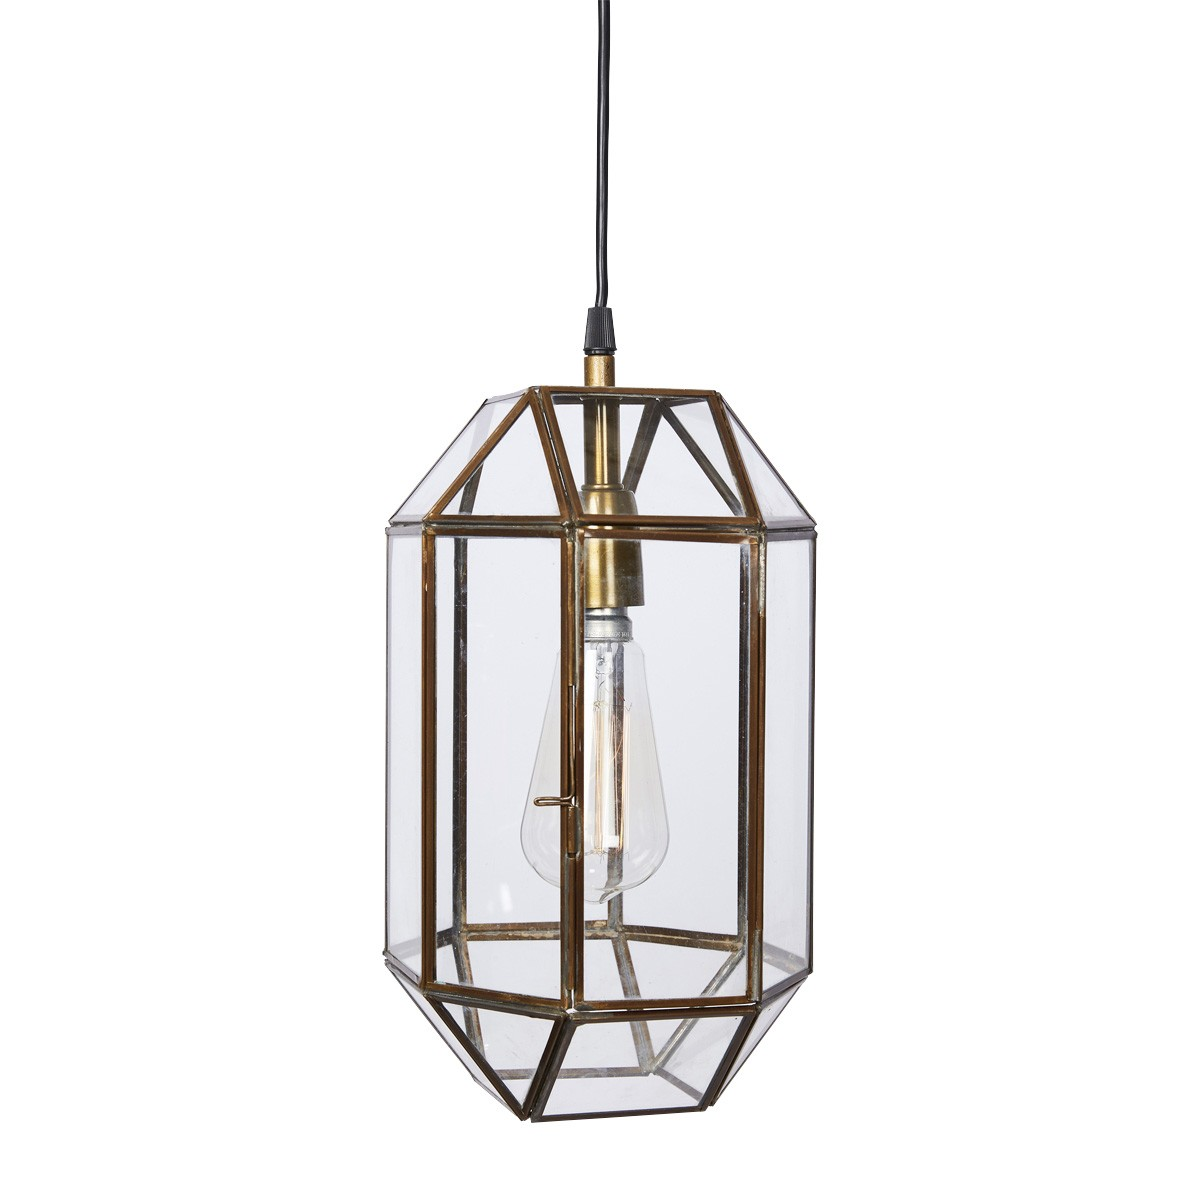 Camilla Brass & Glass Geometric Pendant Light